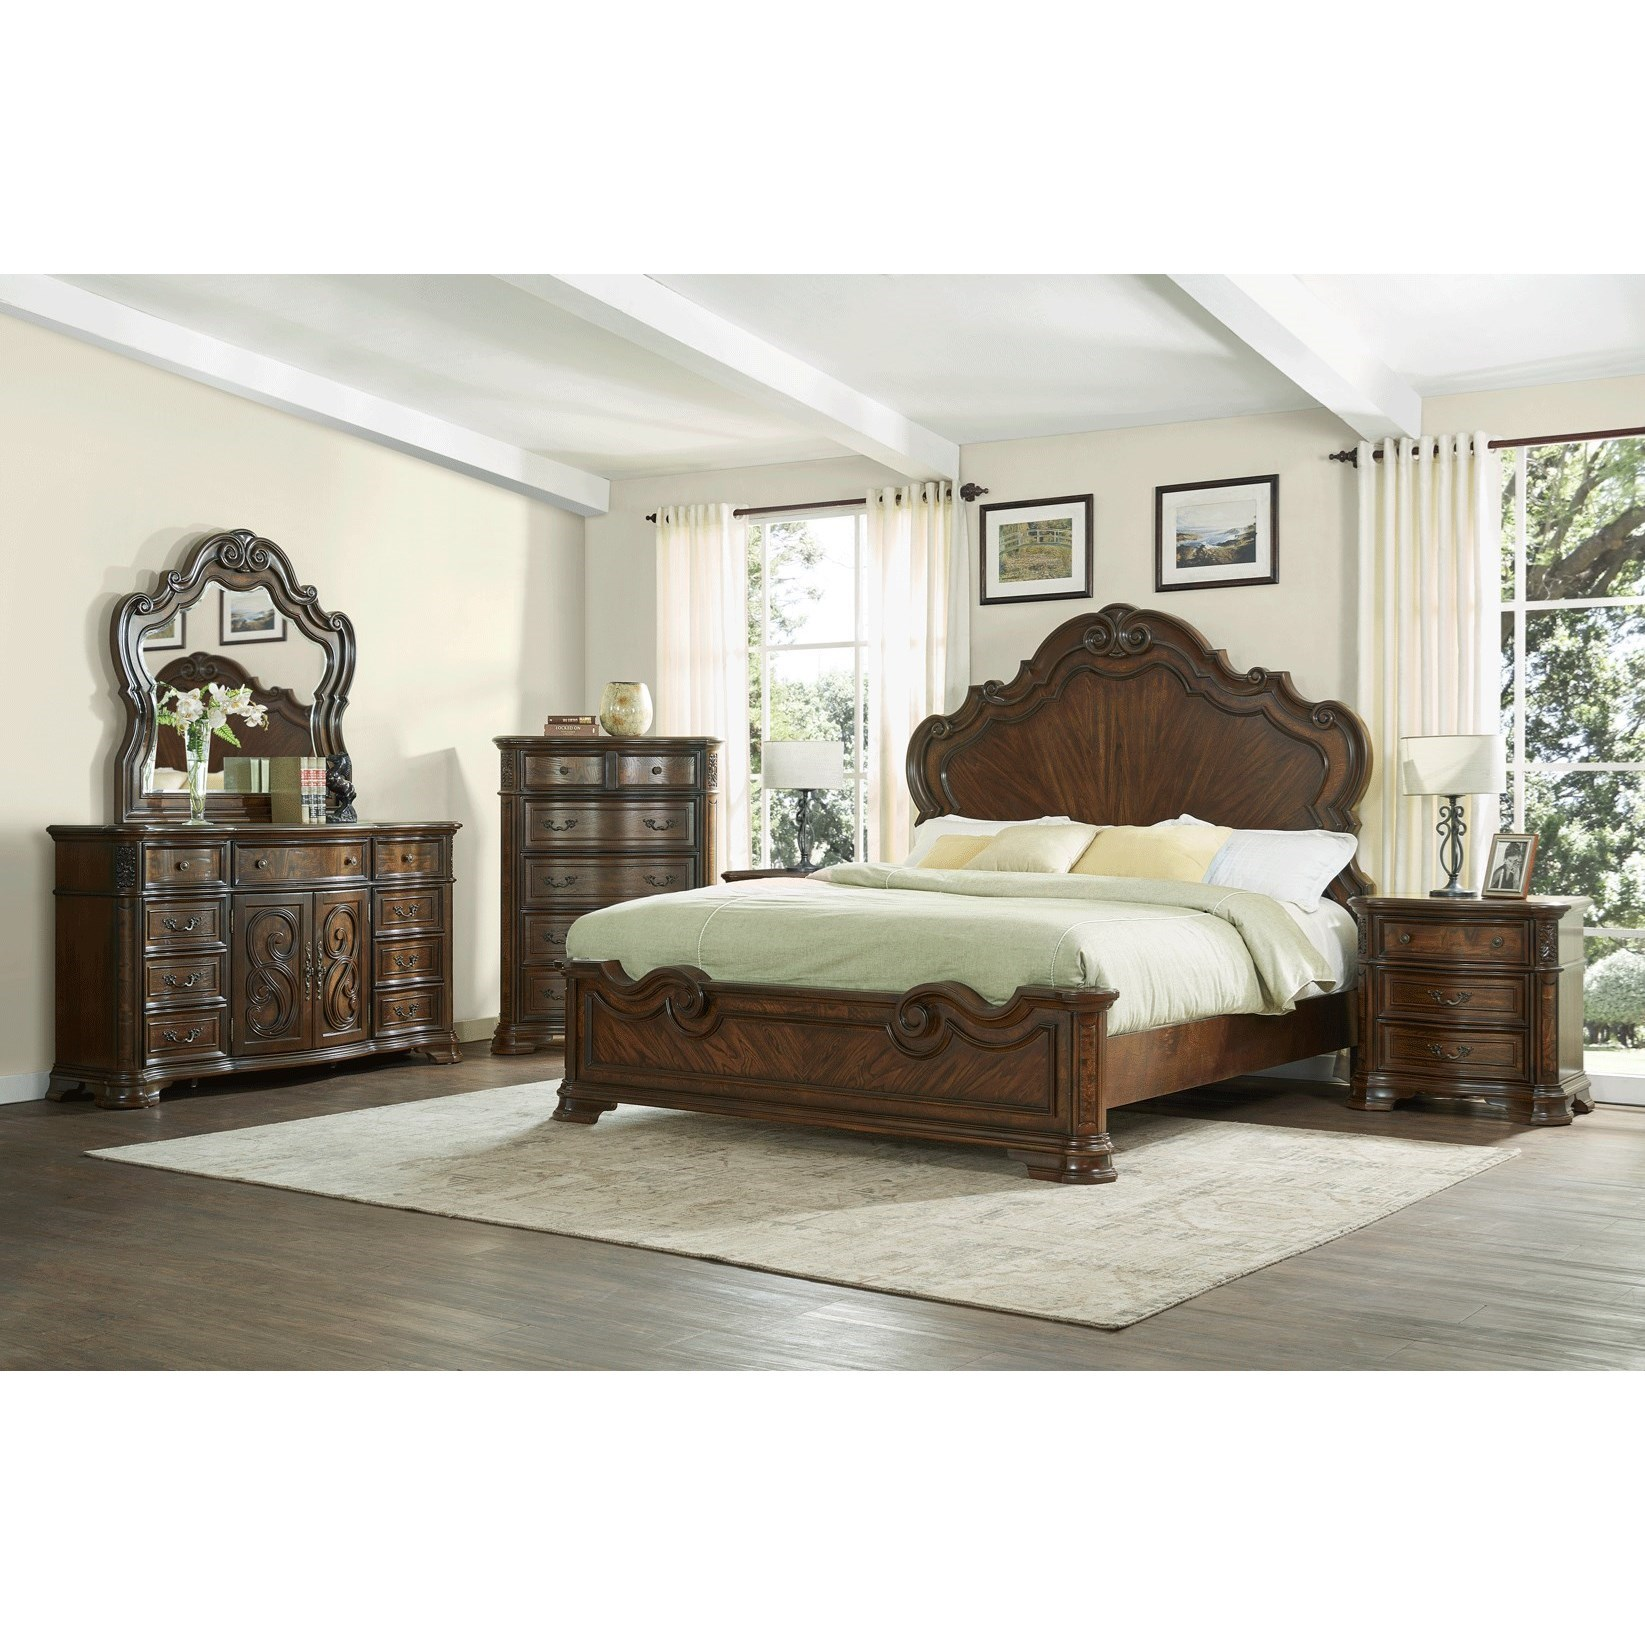 Royale King Bedroom Group by Steve Silver at Northeast Factory Direct